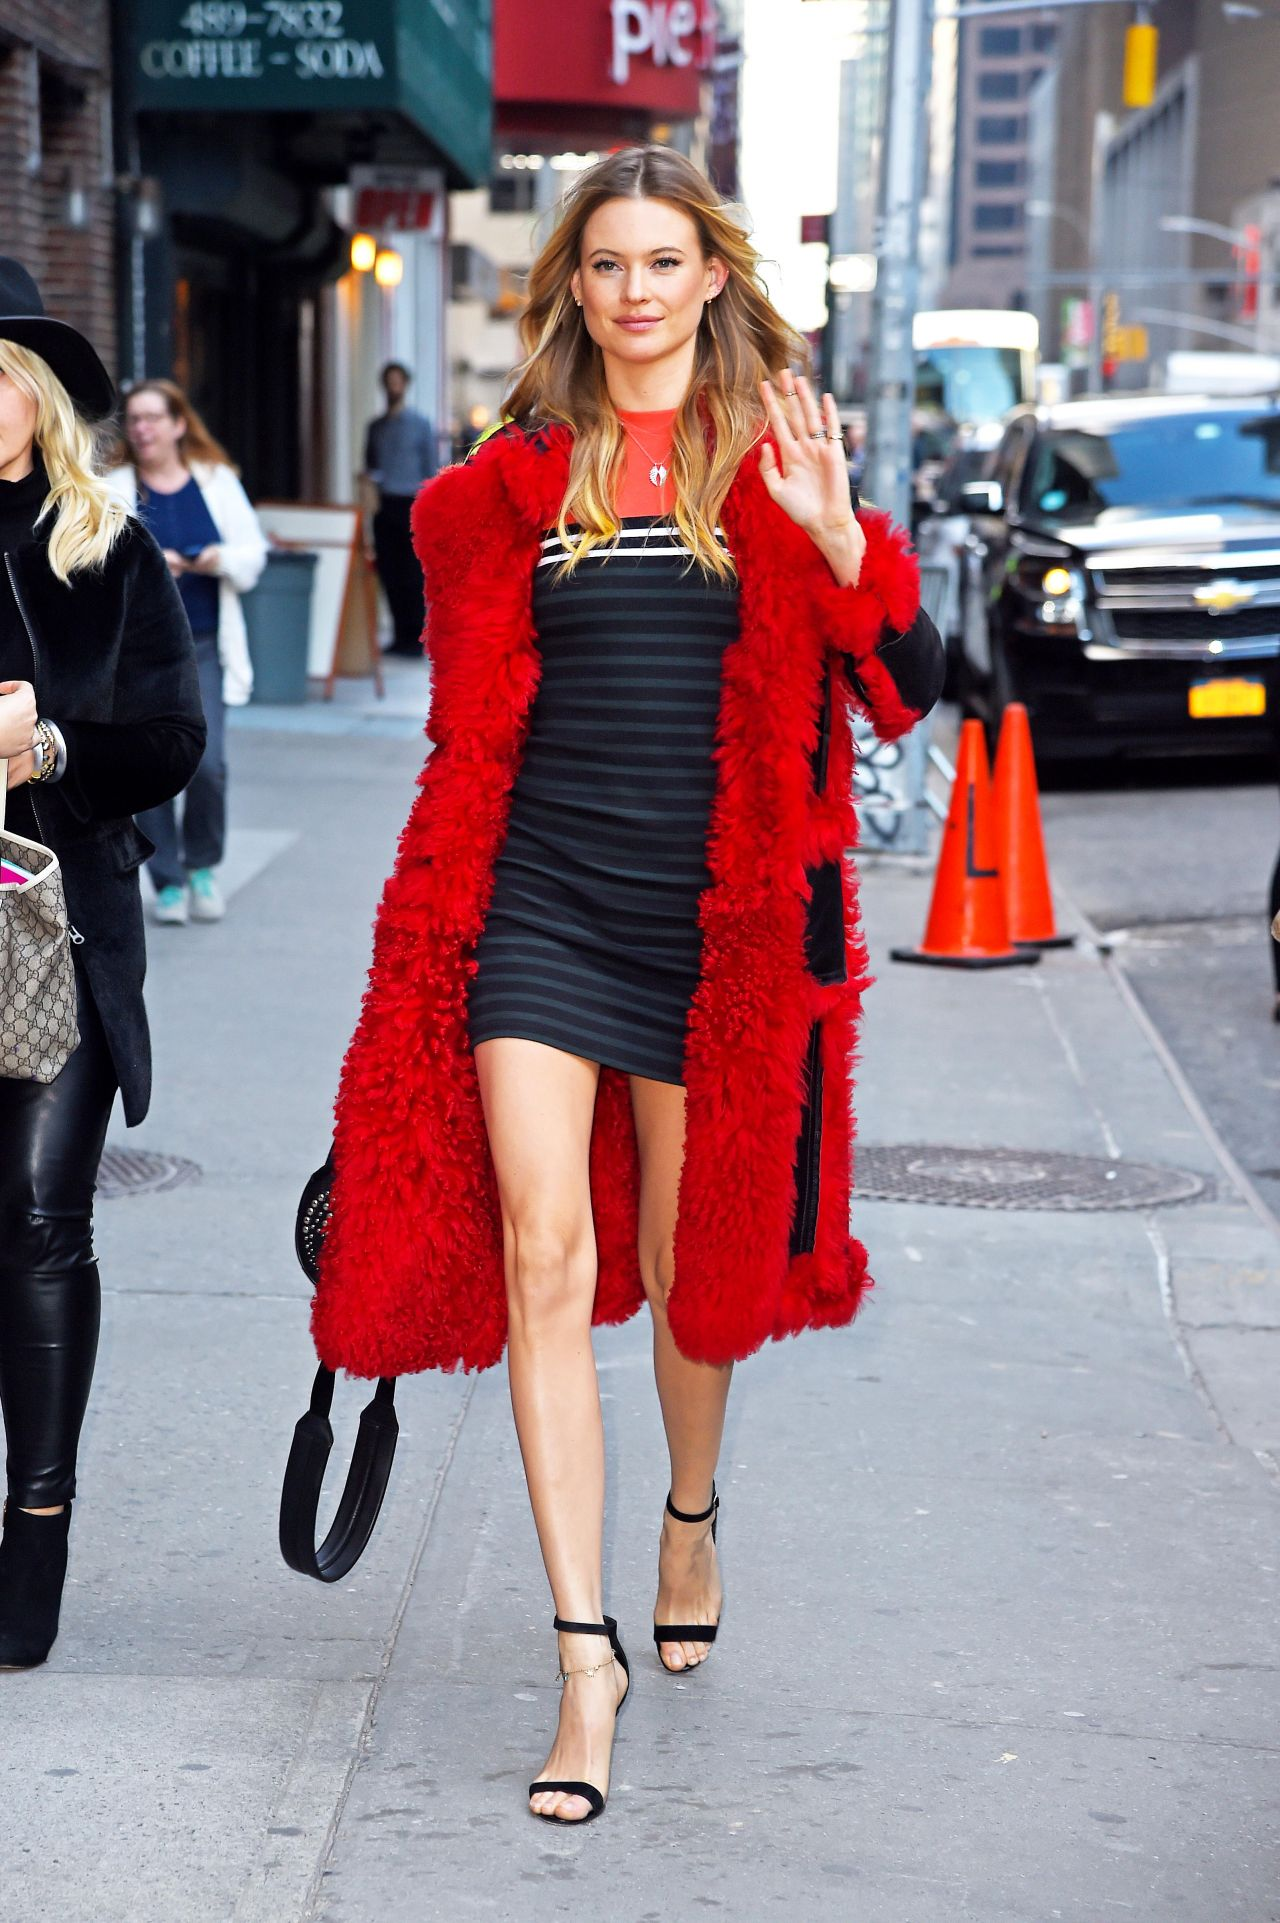 behati prinsloo 39 the late show with stephen colbert 39 in. Black Bedroom Furniture Sets. Home Design Ideas